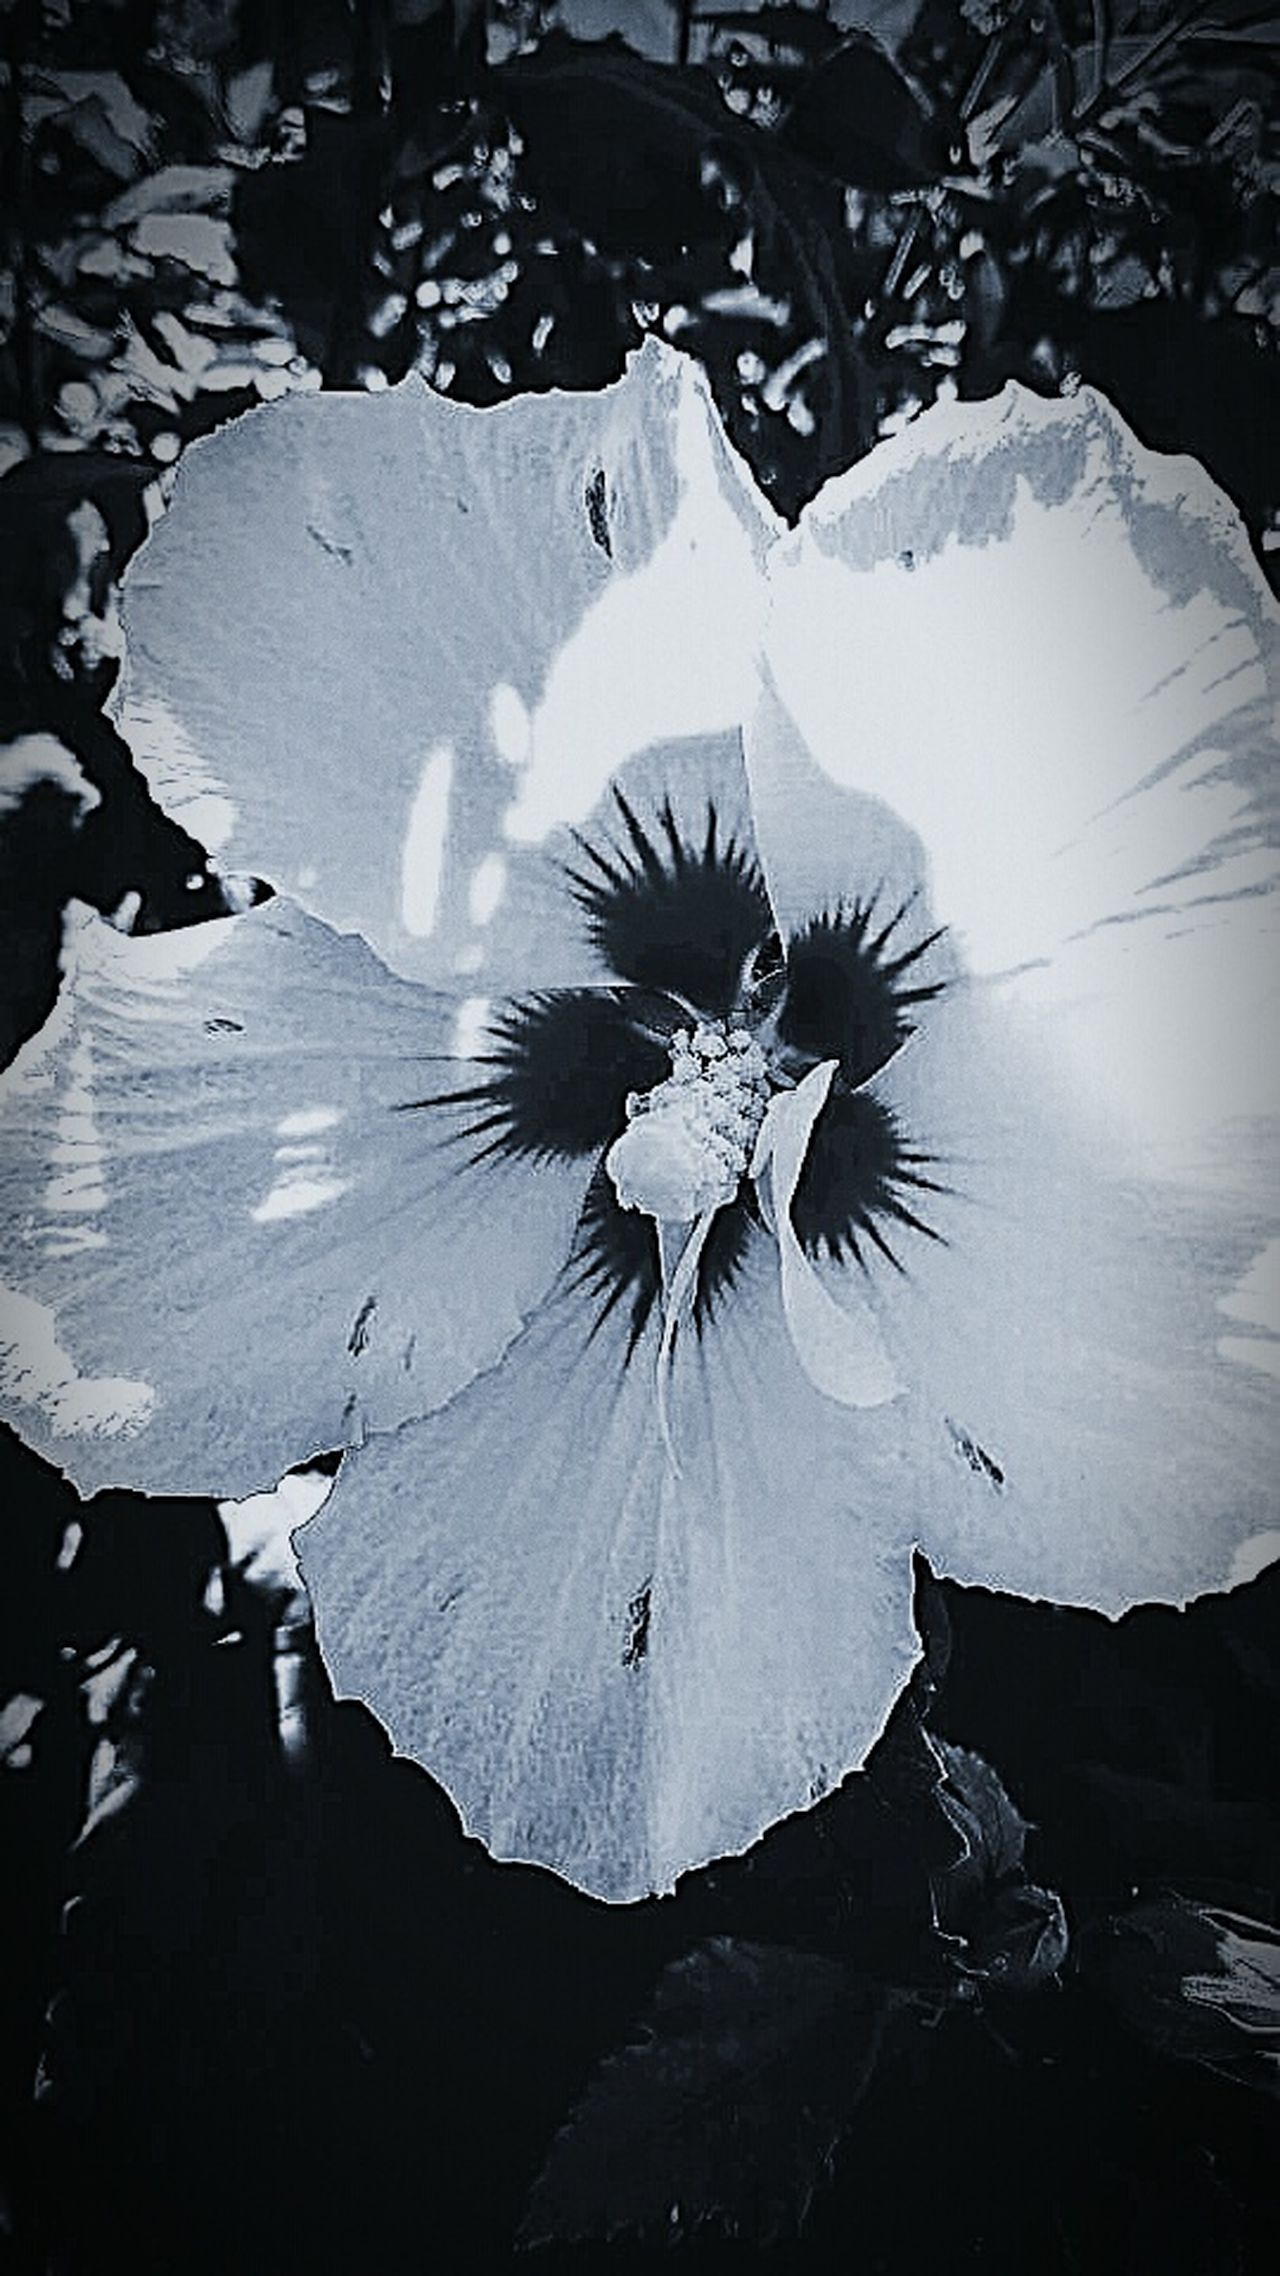 Flower Flower Head Beauty In Nature Black And White Photography Monochrome Nature Black And White Flower Collection In Bloom White Color Hibiscus Nature Up Close Flowers, Nature And Beauty Nature Outdoors Flower Photography Nature Photography This Week On Eyeem Flower Porn Macro Photography Focus On Foreground No People Beauty In Nature Single Flower Close-up EyeEm Nature Lover Eyeem Marketplace